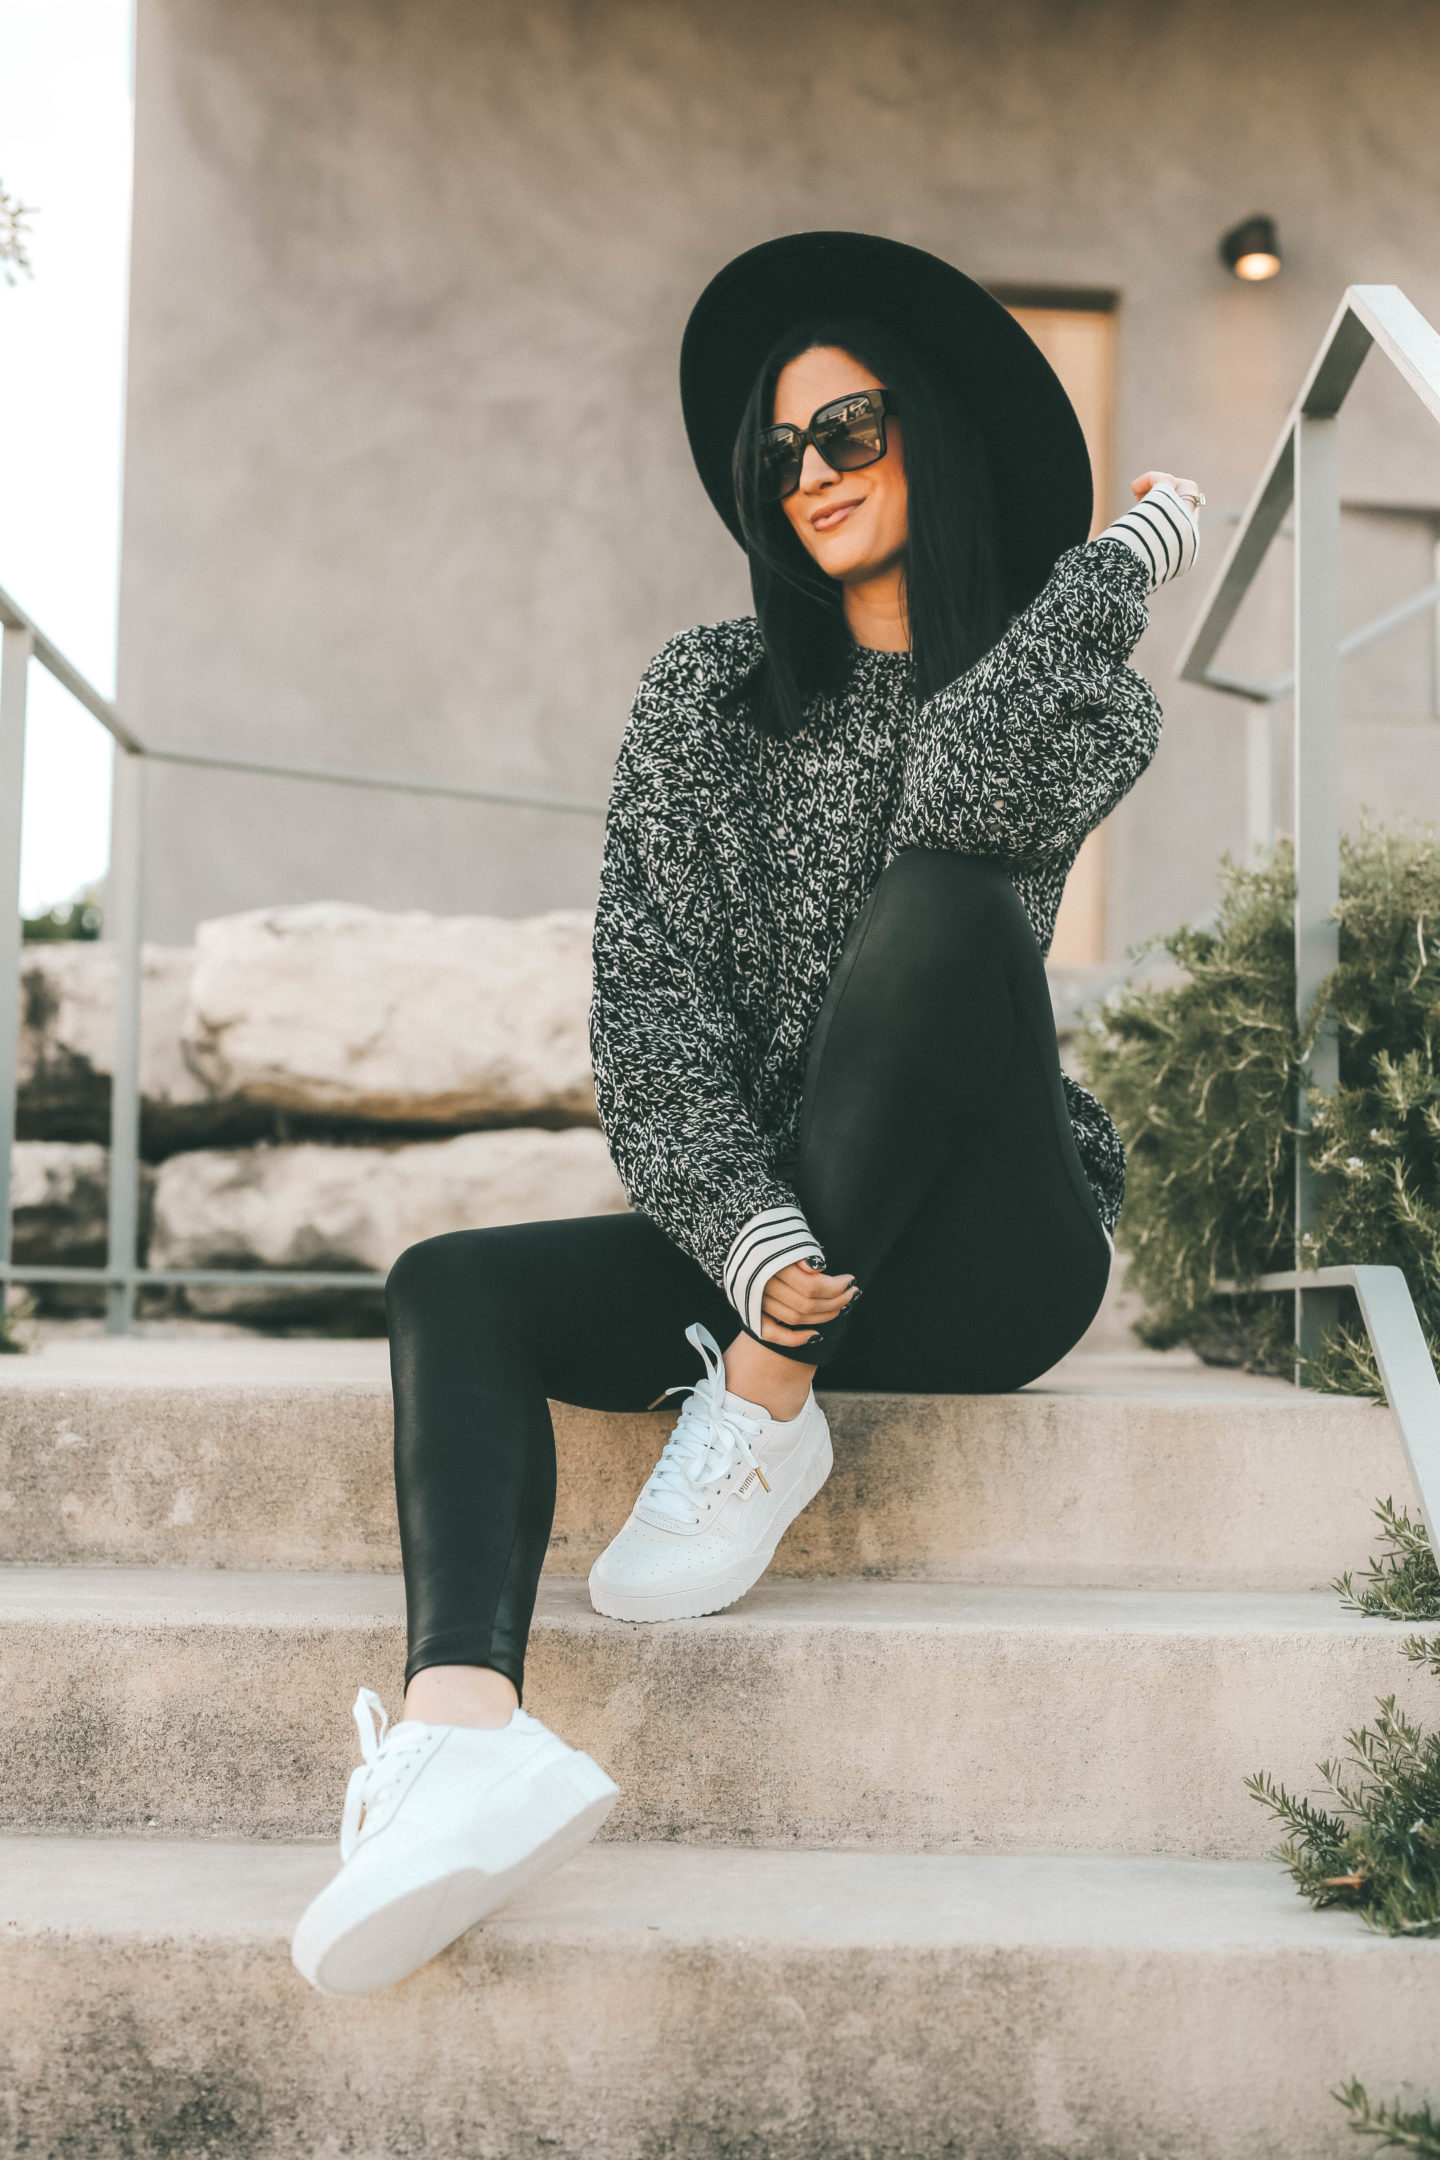 How to Wear White Sneakers by popular fashion blog, Dressed to Kill: image of a woman wearing a TopShop black and white sweater, black felt hat, black leggings, and white Puma sneakers.